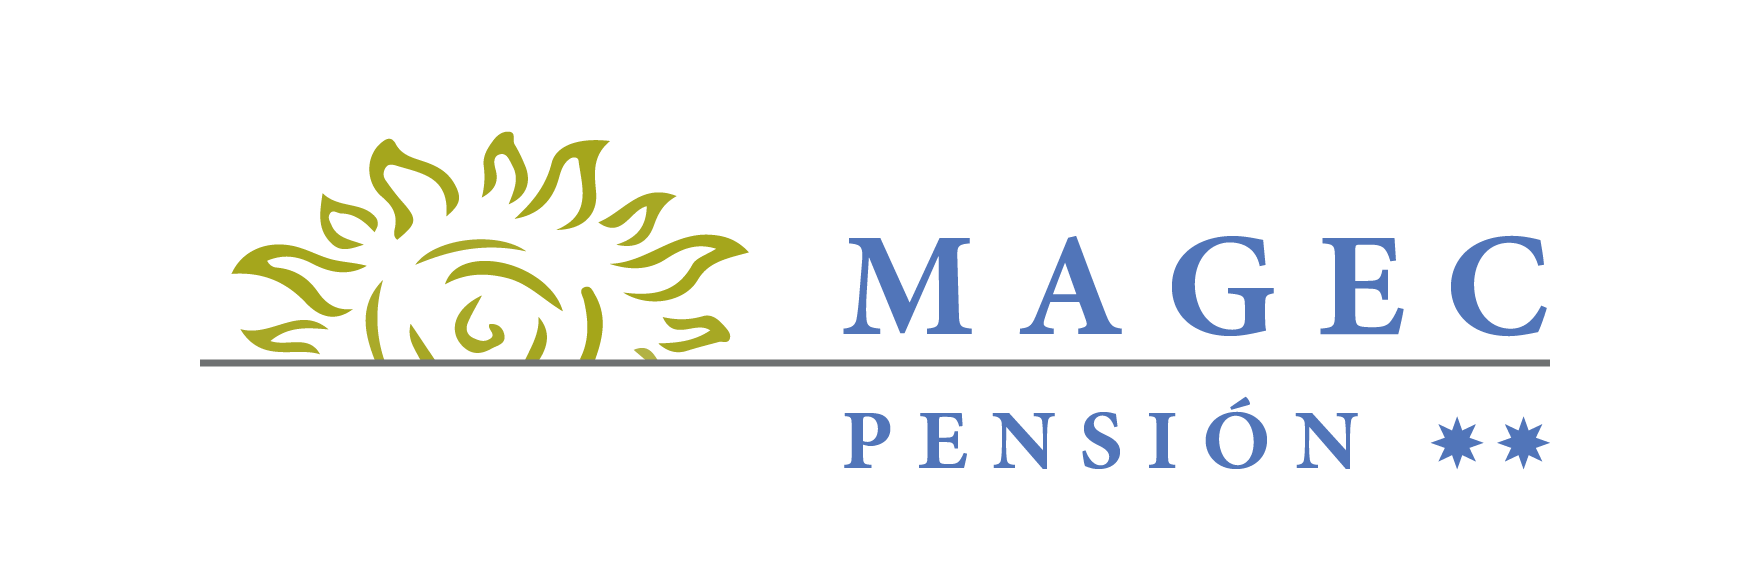 Pension Magec